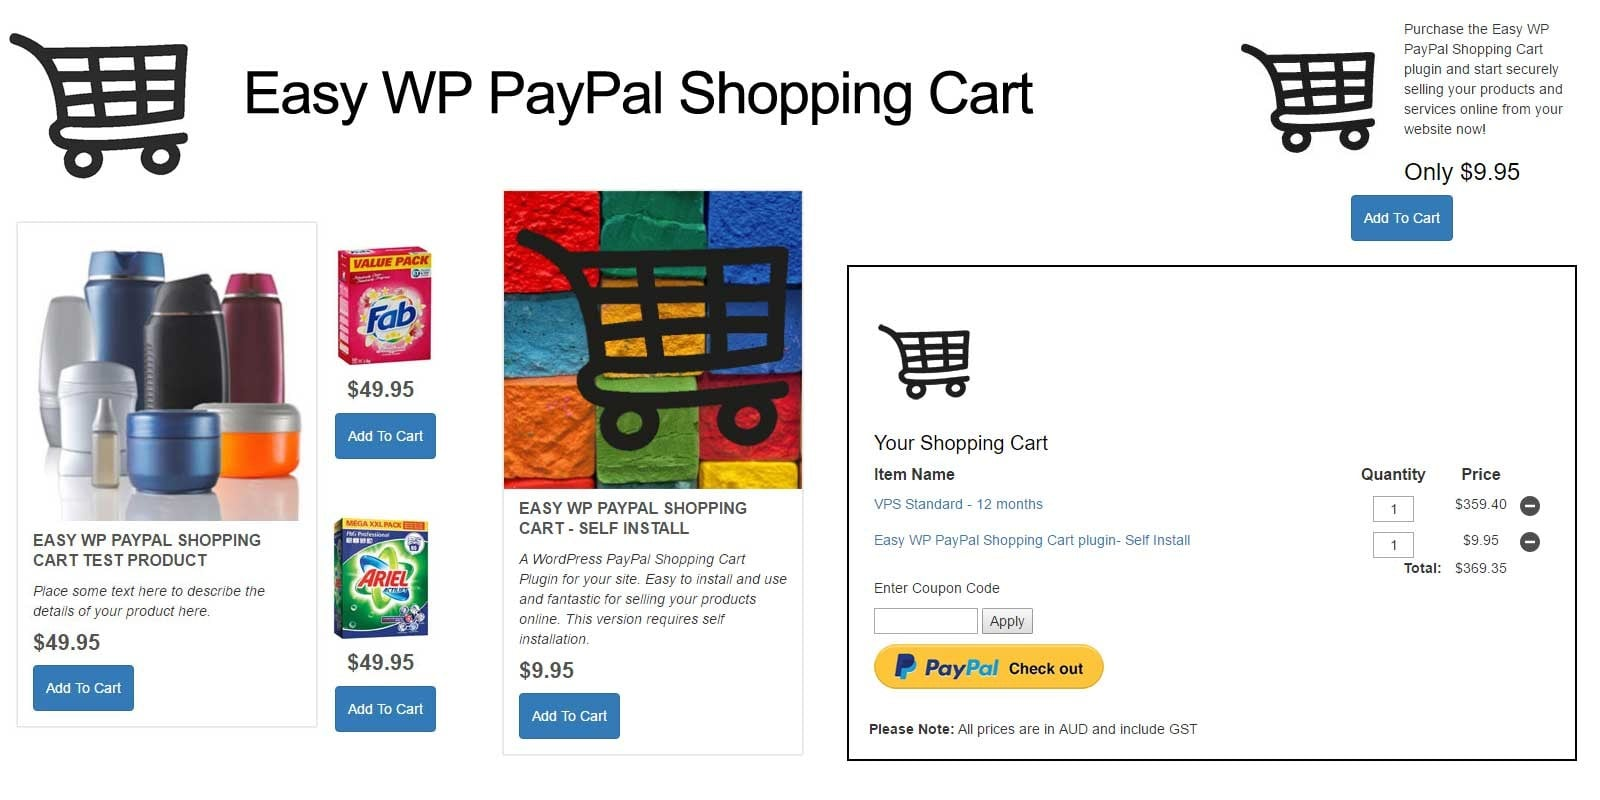 Shopping cart software is the best option among other ecommerce website technology if you already have a website and want to add a product catalog and process payments